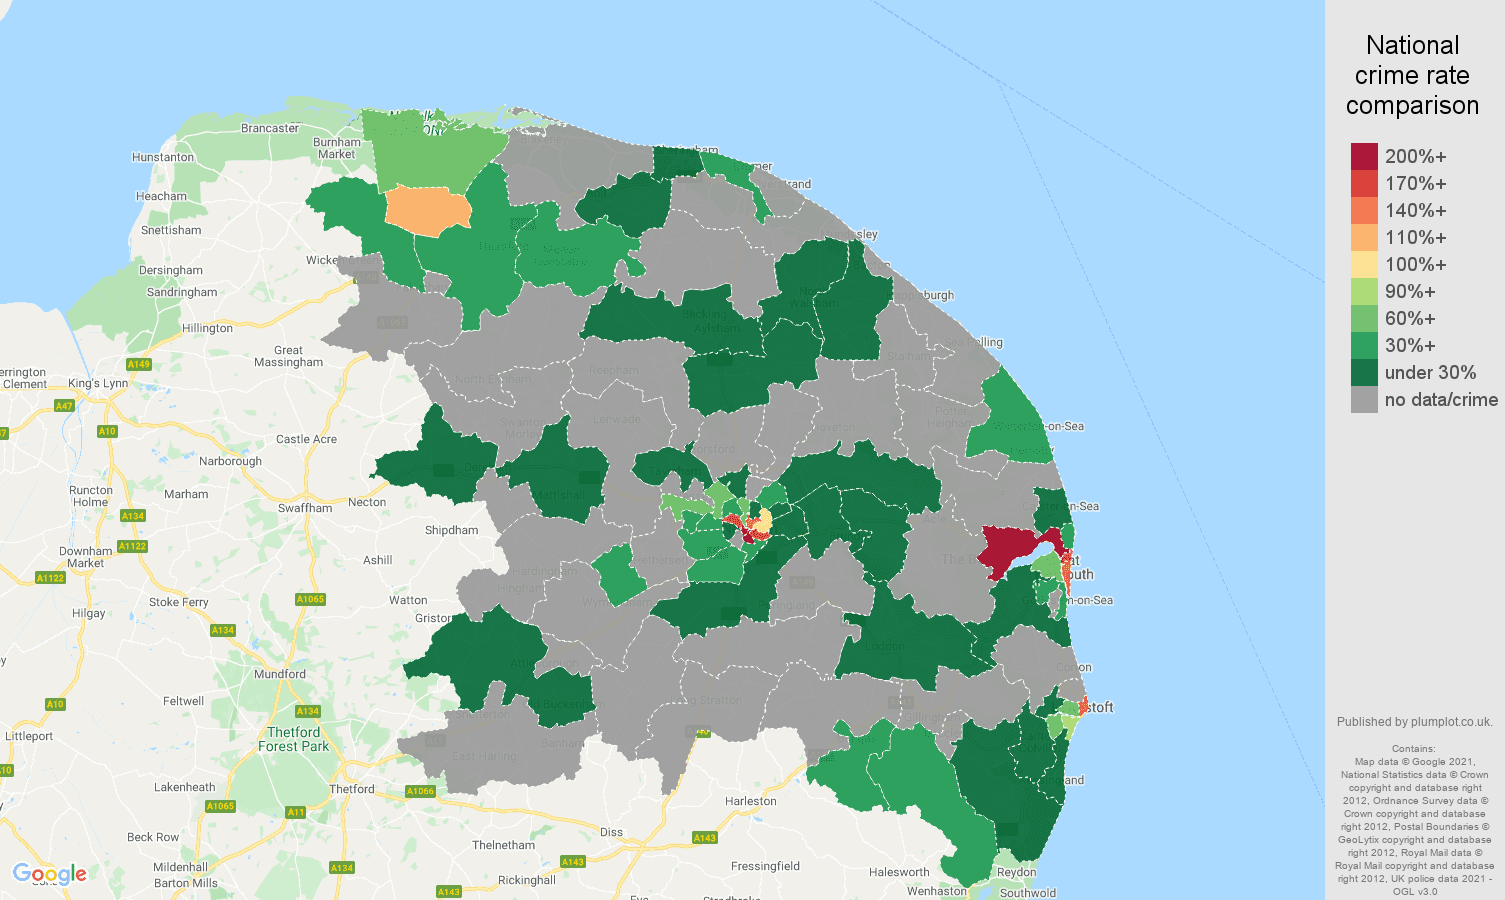 Norwich theft from the person crime rate comparison map